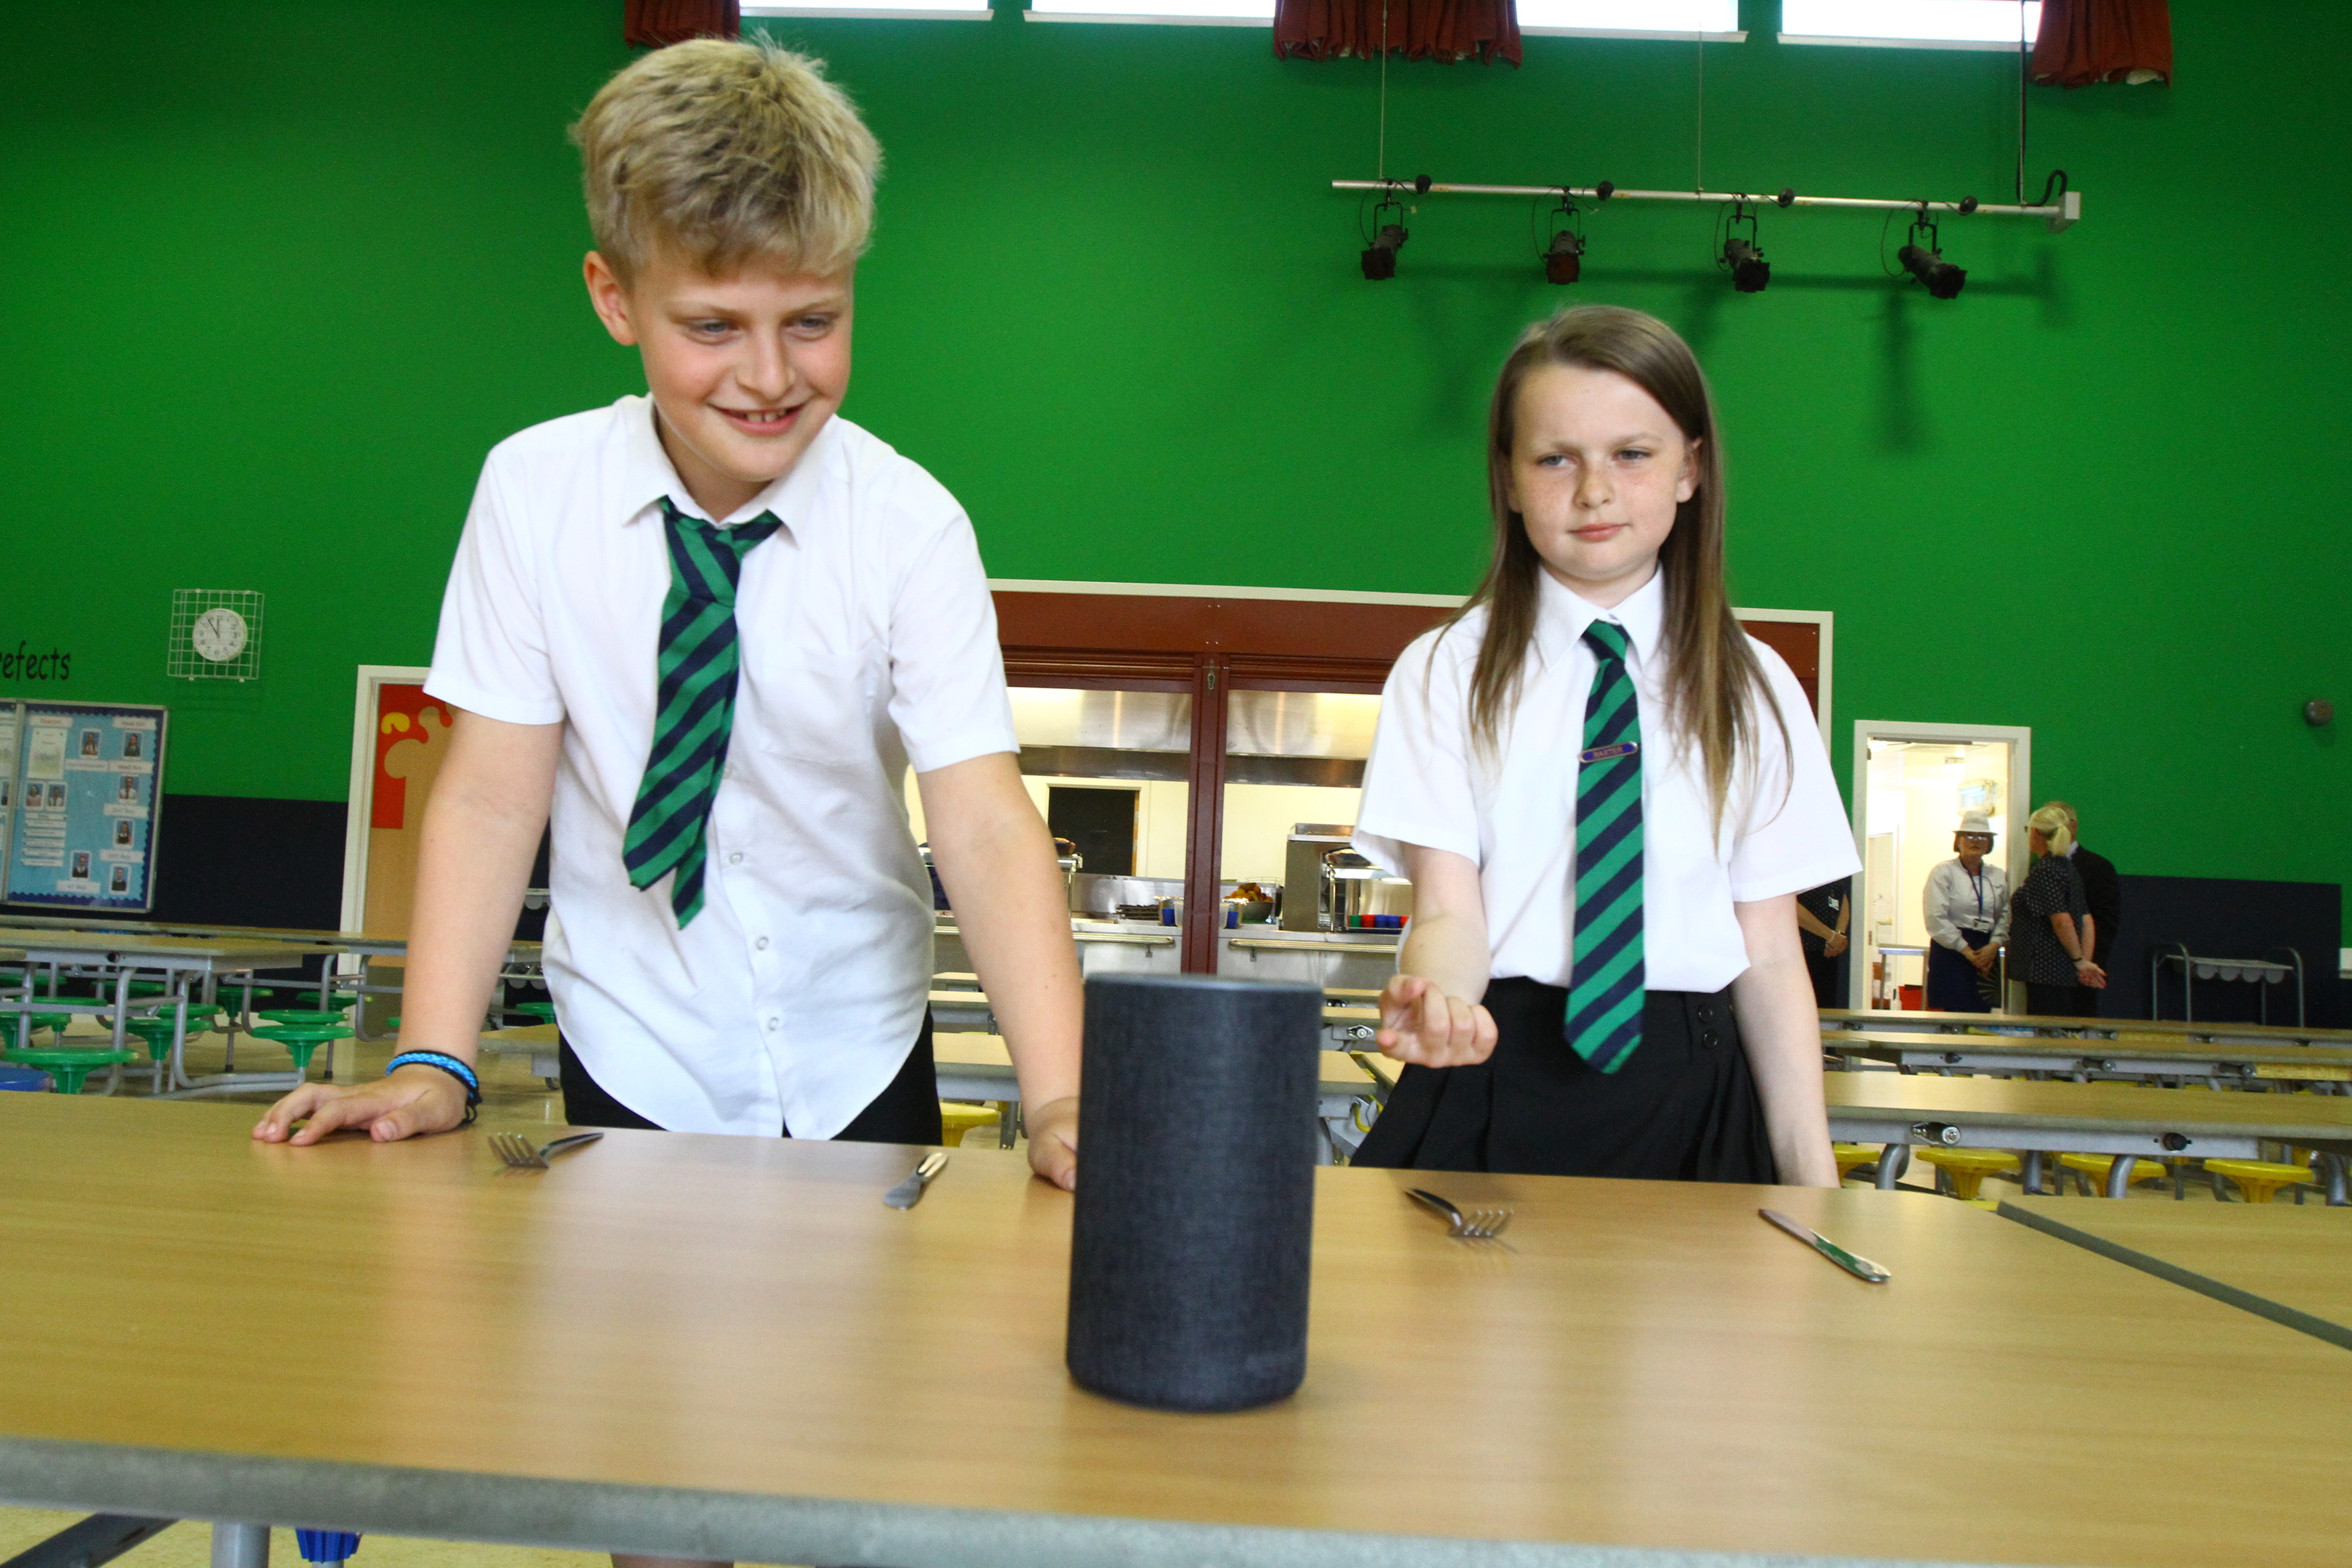 David Bachanek, P4, and Caitlin Walsh, P6, with Alexa which enables them to find out what is on the menu for school dinners